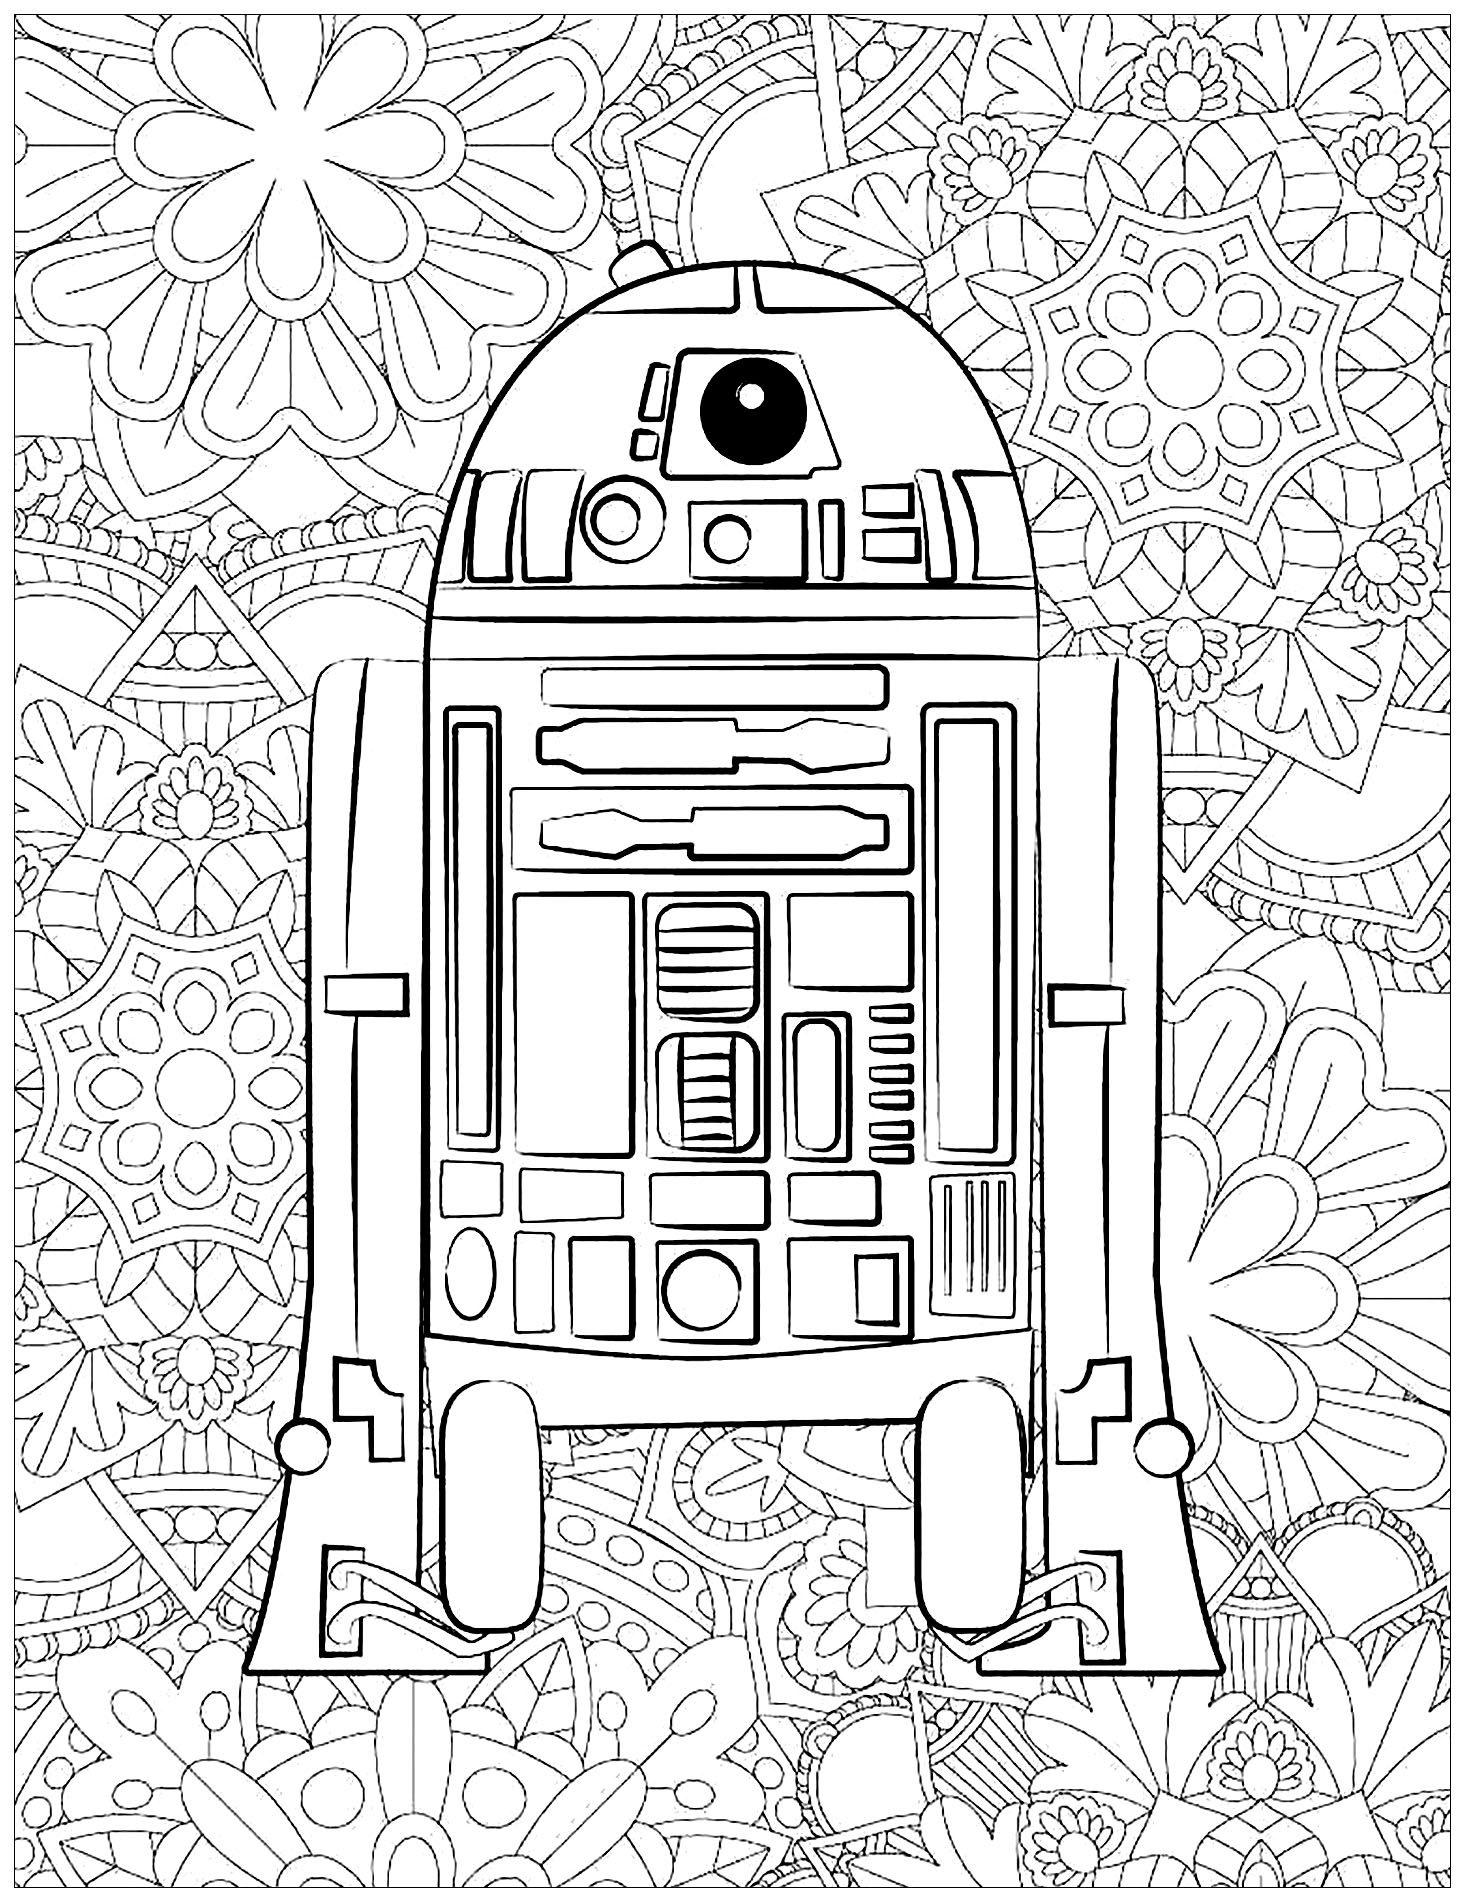 star wars colouring printables top 4 ways to get into the star wars craze adult printables wars star colouring